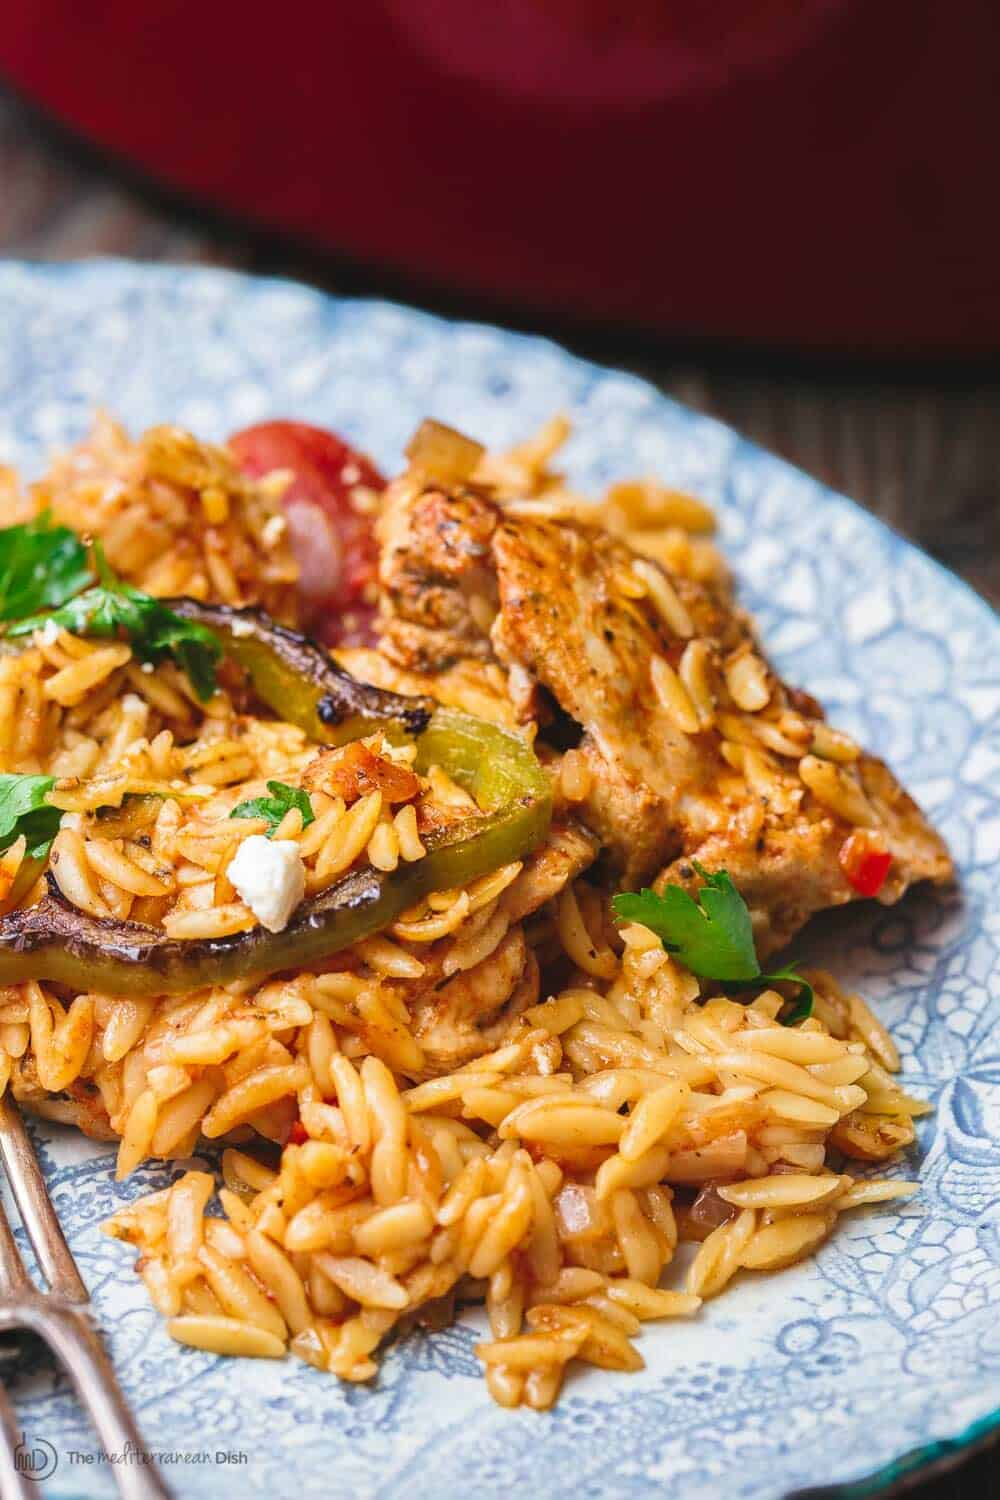 Greek Baked Chicken Orzo Recipe | The Mediterranean Dish. All the comfort of Greek flavors in this one-pot chicken orzo dinner. Perfectly seasoned chicken cooked with orzo, onions, bell peppers, and tomatoes. The right spices make all the difference. From themediterraneandish.com #greekfood #mediterraneanfood #mediterraneandiet #chickendinner #chickenrecipe #healthyrecipe #onepotdinner #easydinner